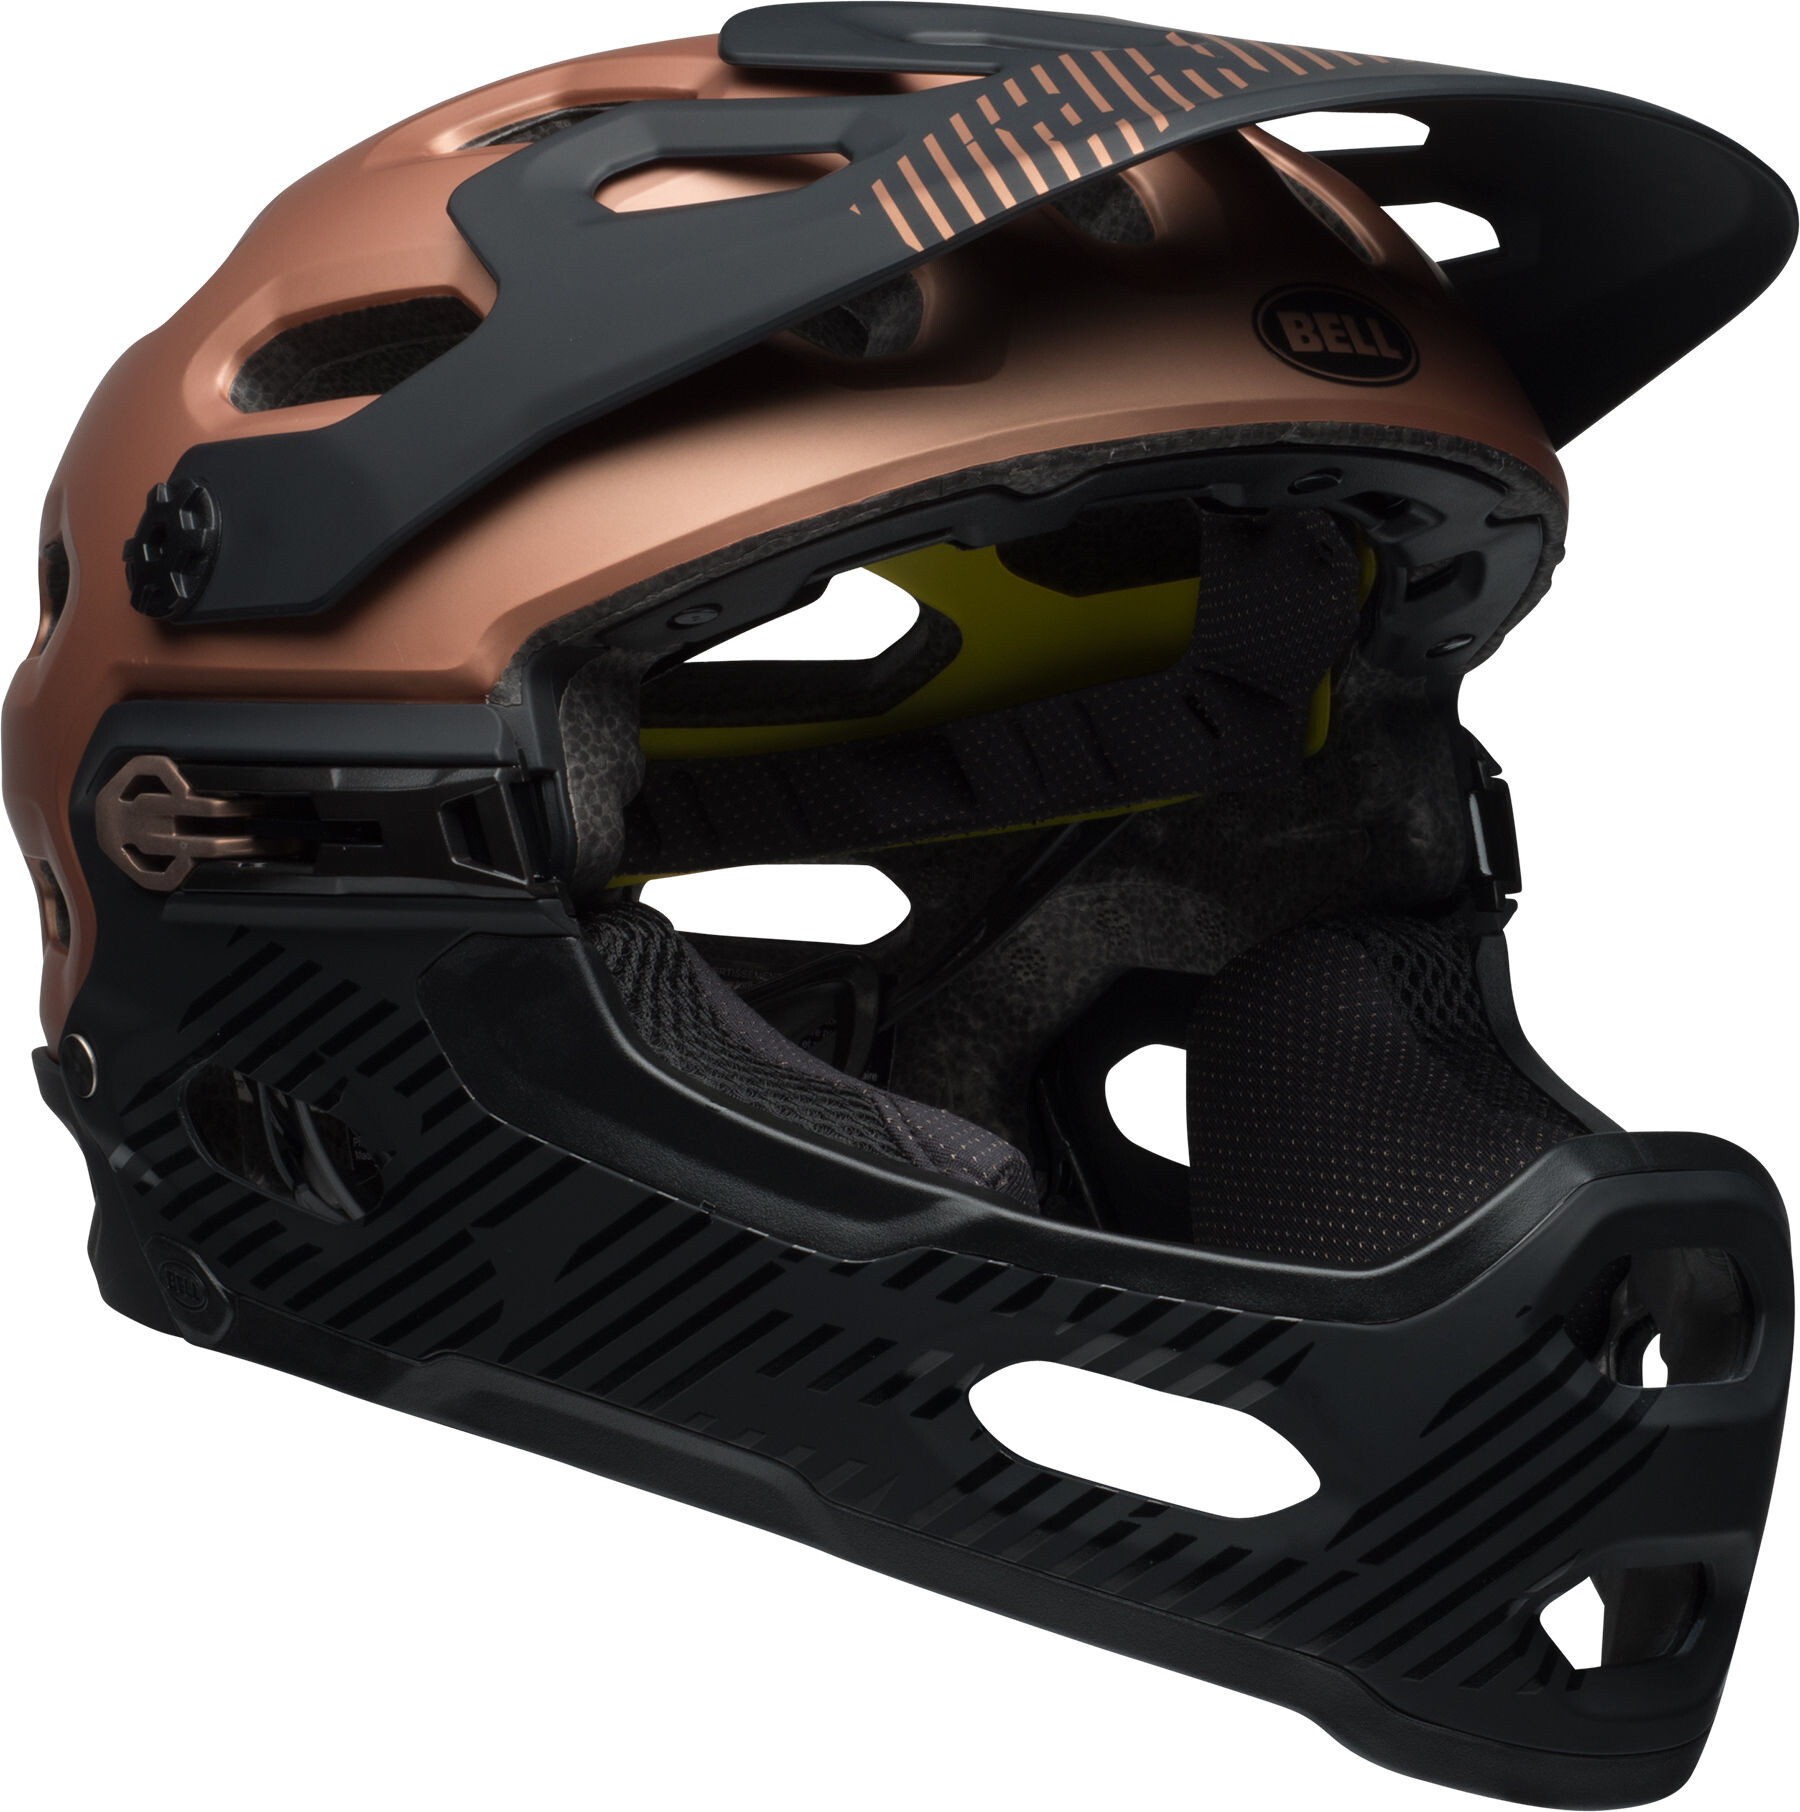 bell super 3r mips mtb helmet matte copper black online kaufen. Black Bedroom Furniture Sets. Home Design Ideas